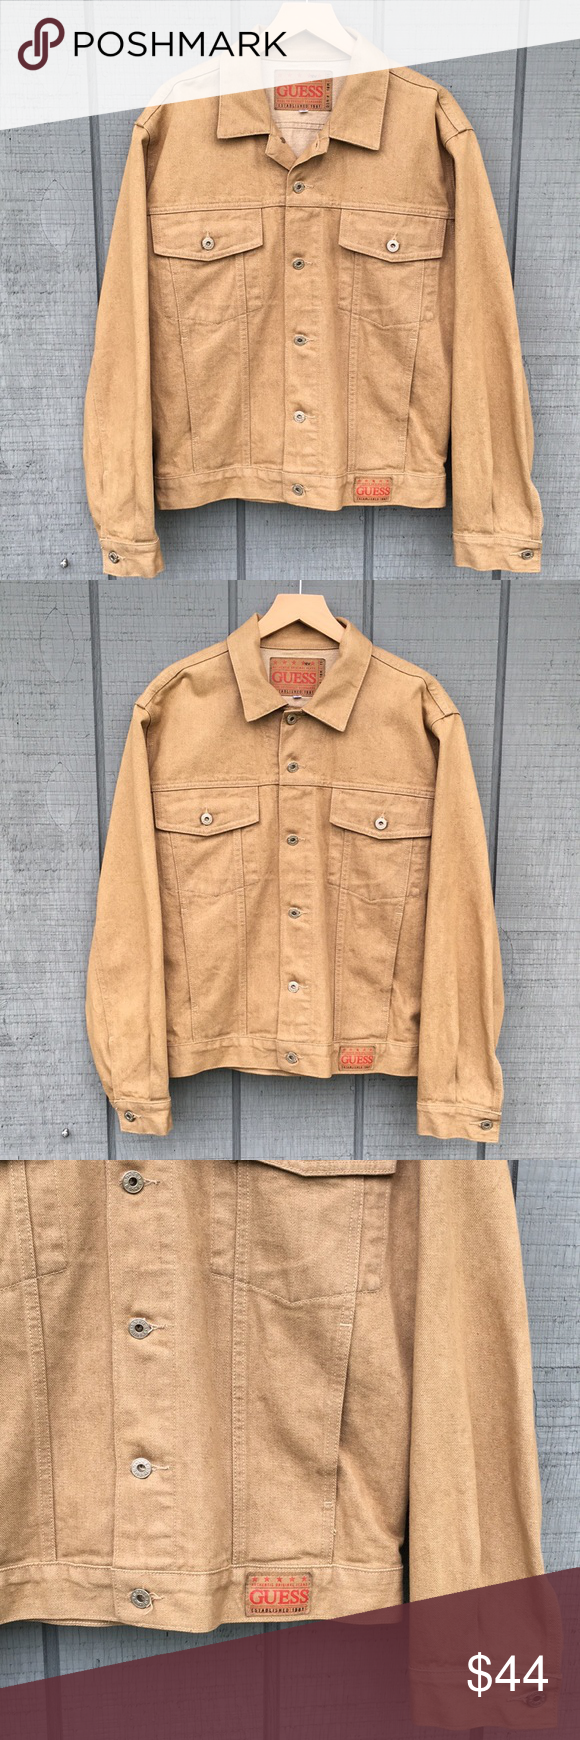 Vintage Guess Made In Usa Tan Trucker Jean Jacket Jackets Guess Jeans Mens Jackets [ 1740 x 580 Pixel ]